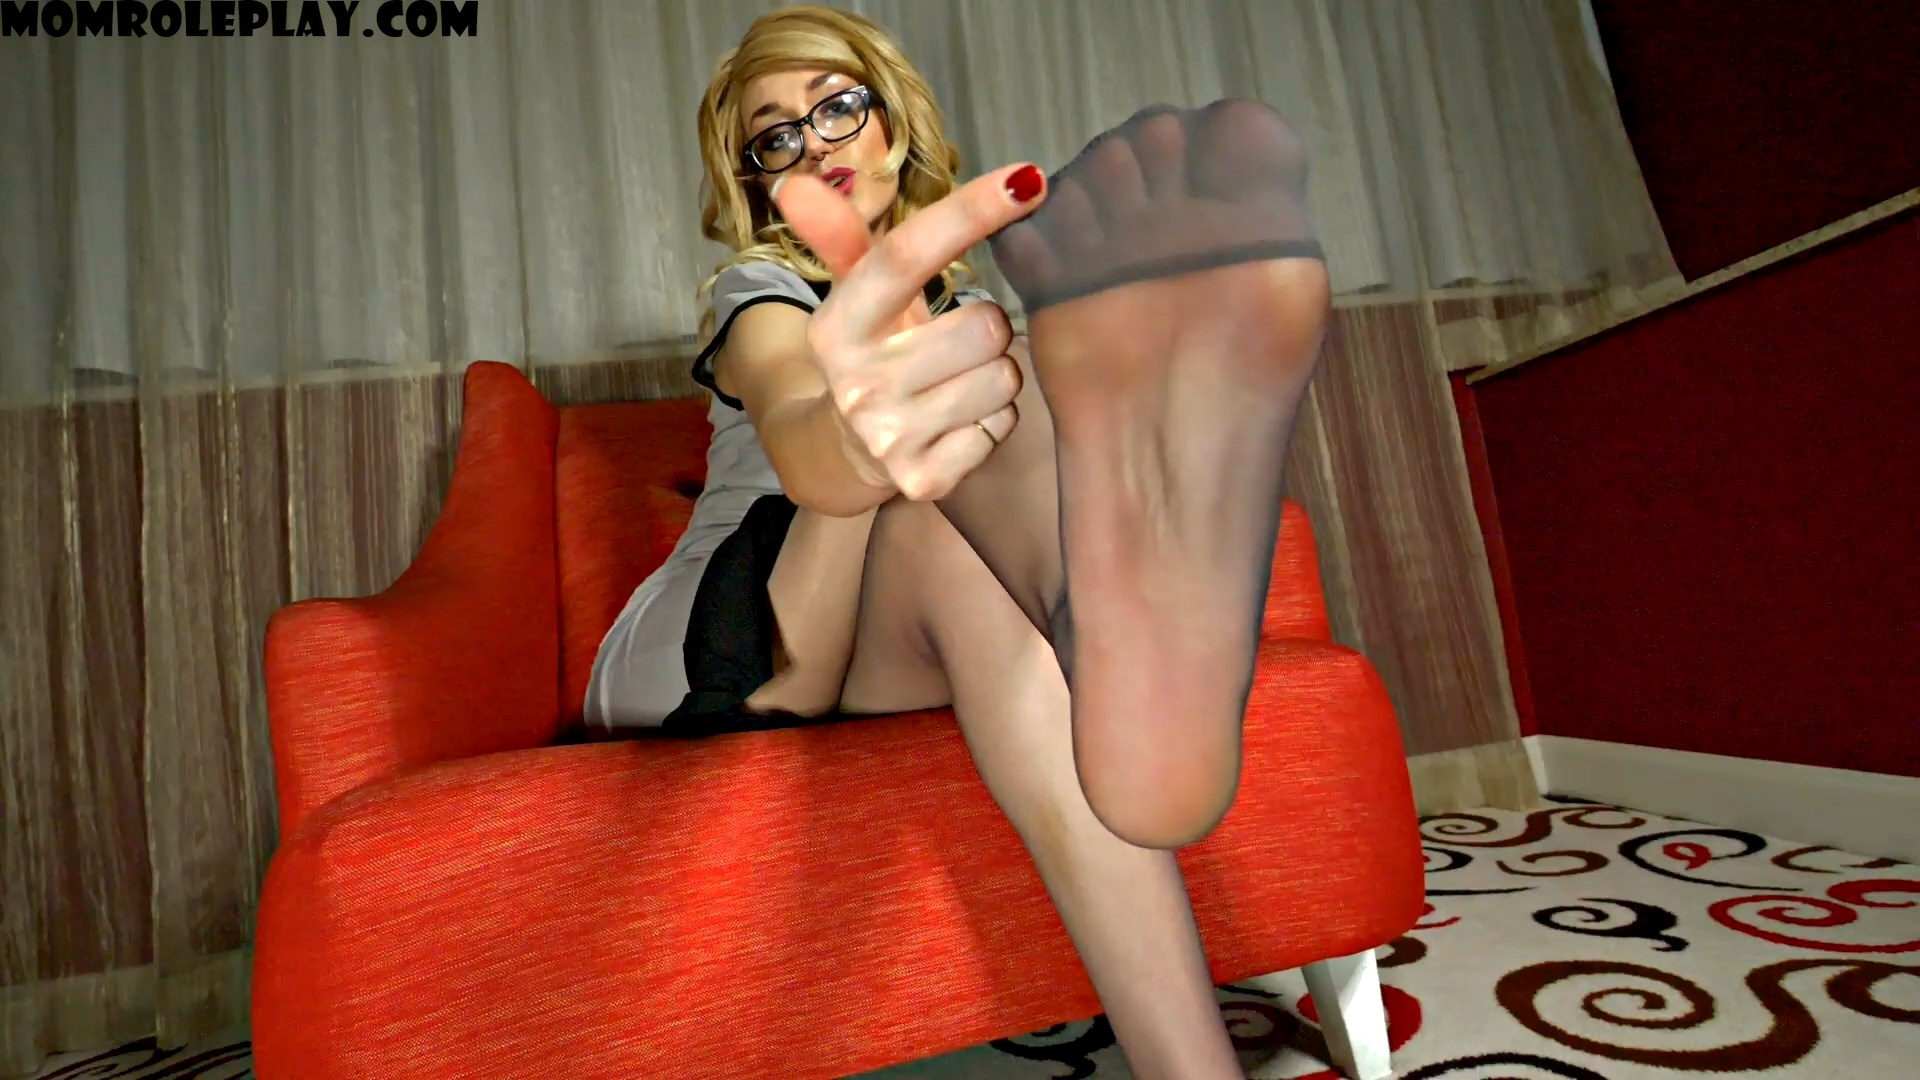 Perversion Productions - Stroke Lessons From Mommy - Feat. Sablique Von Lux